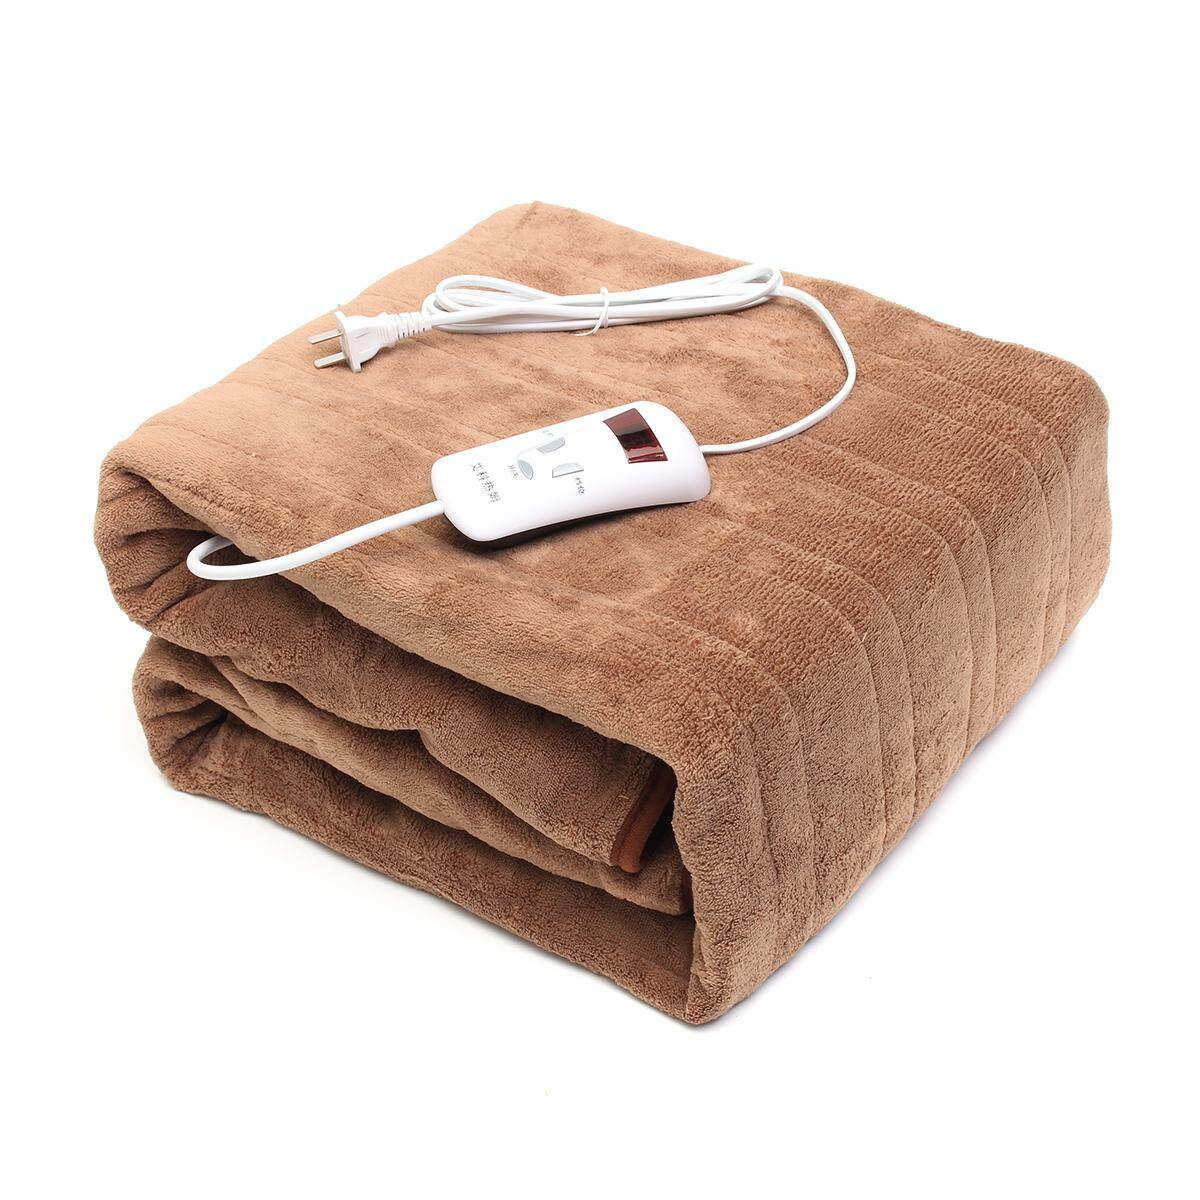 Electric Blanket Double Single-Control Temperature-Resistant, Waterproof And Water-Proof Dormitory Single Electric Mattress - Intl By Threegold.